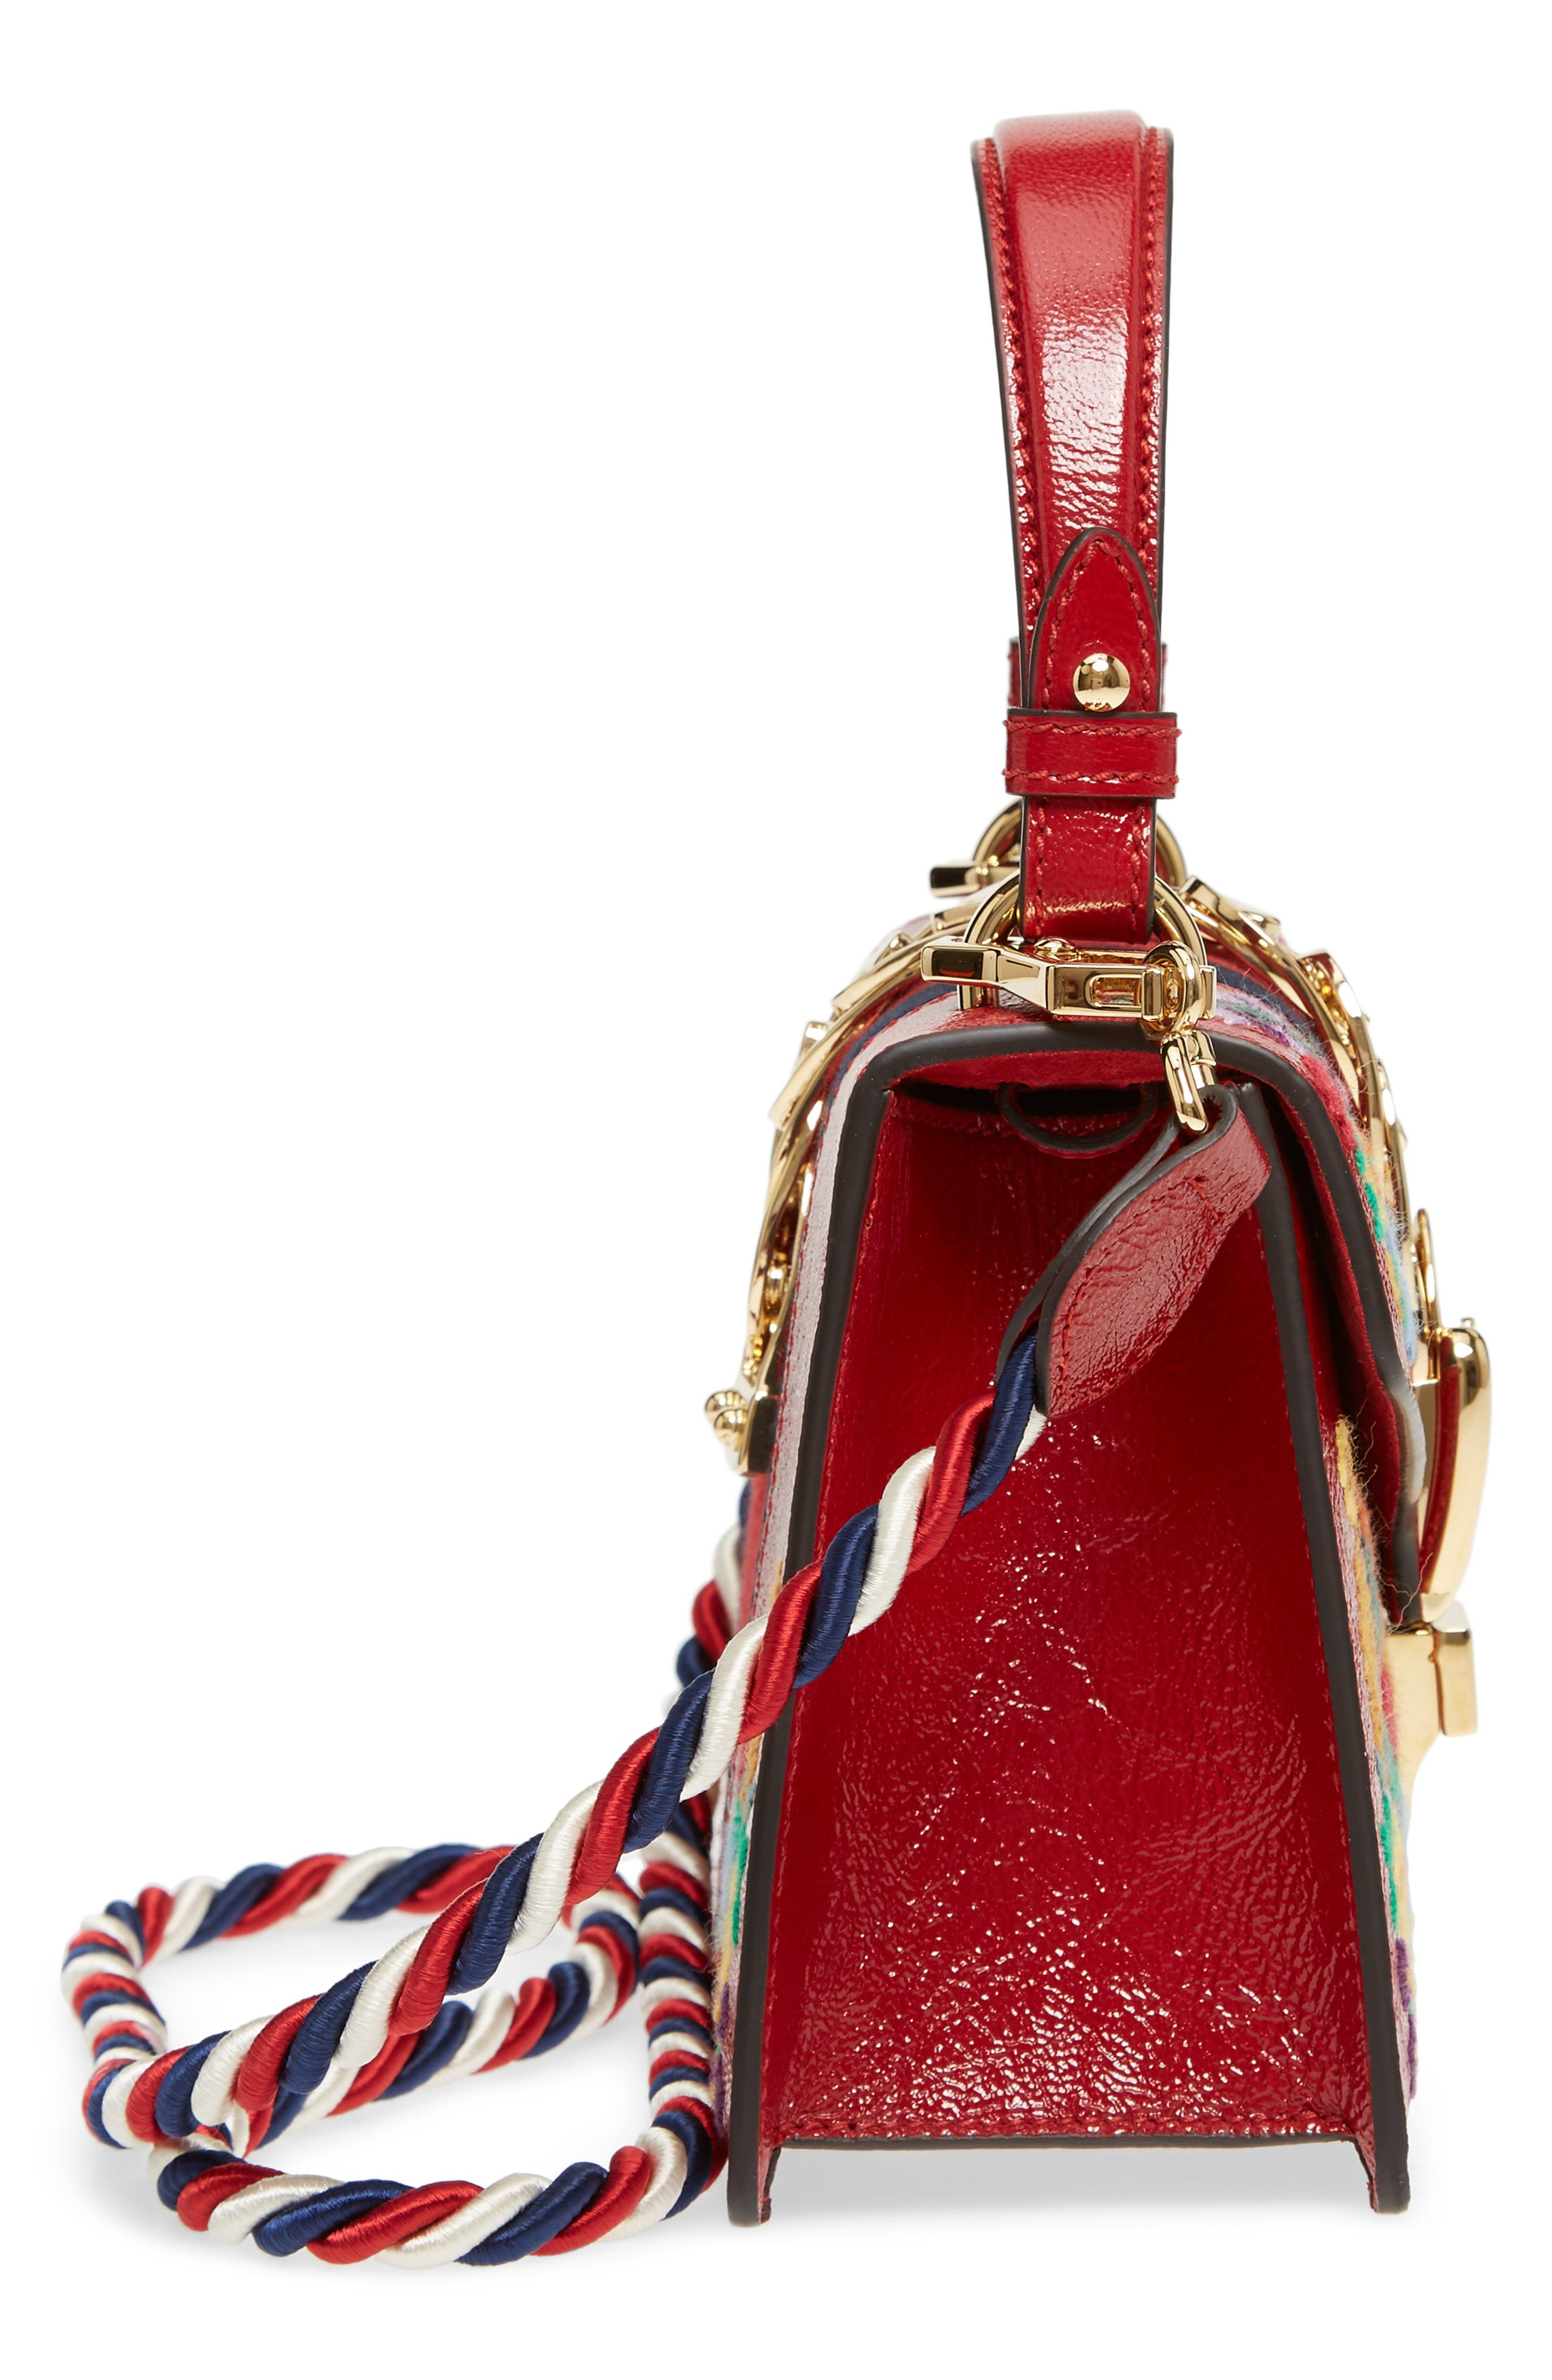 Mini Sylvie Flower Embroidery Leather Shoulder Bag,                             Alternate thumbnail 5, color,                             Hibiscus Red Multi/ Blue